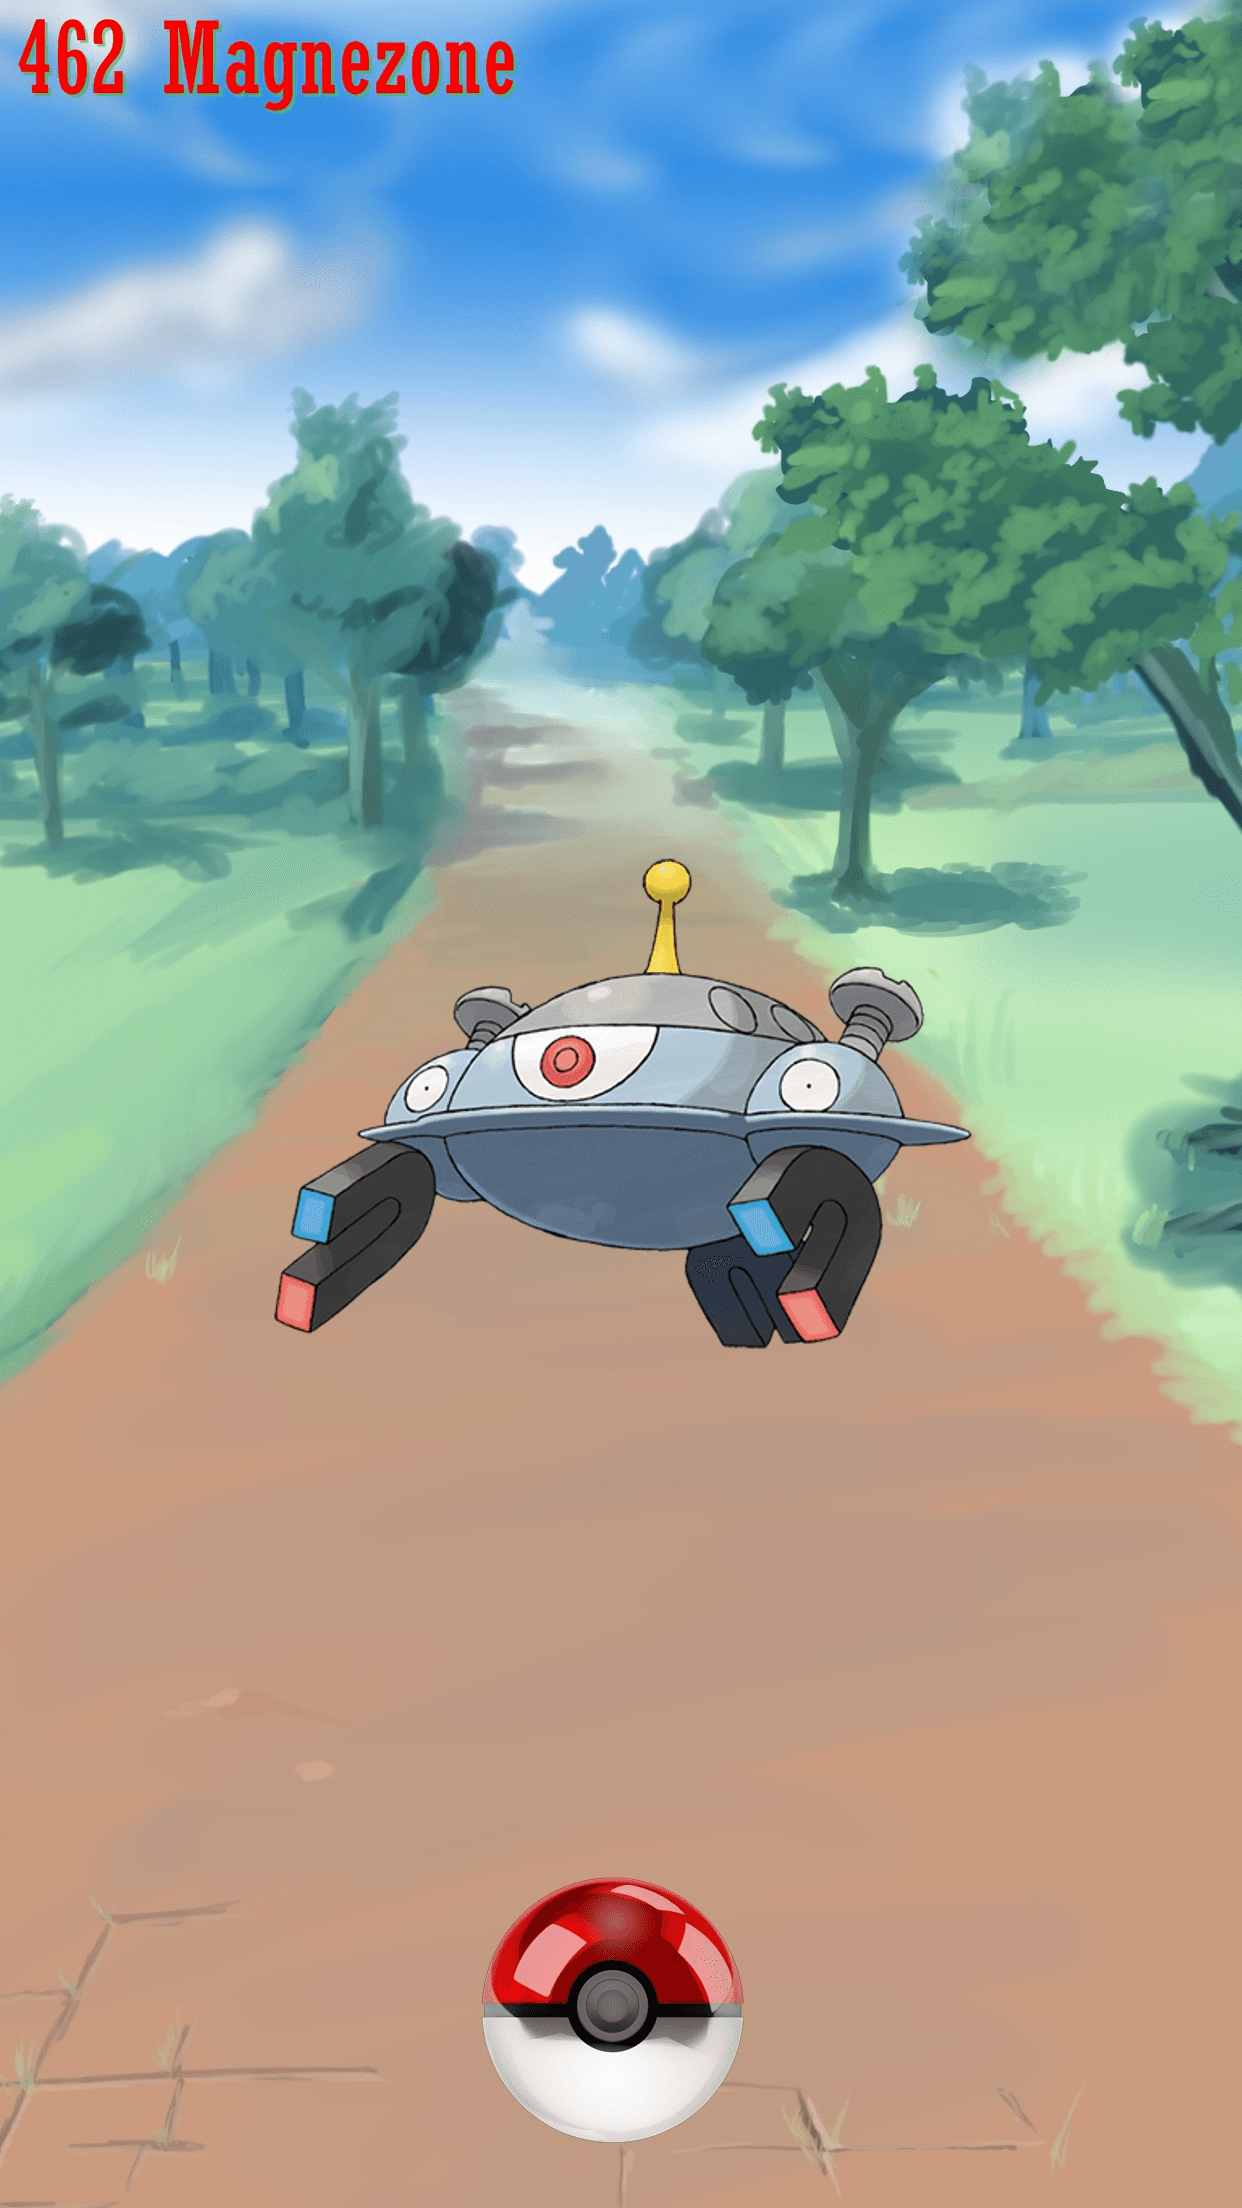 462 Street Pokeball Magnezone | Wallpaper